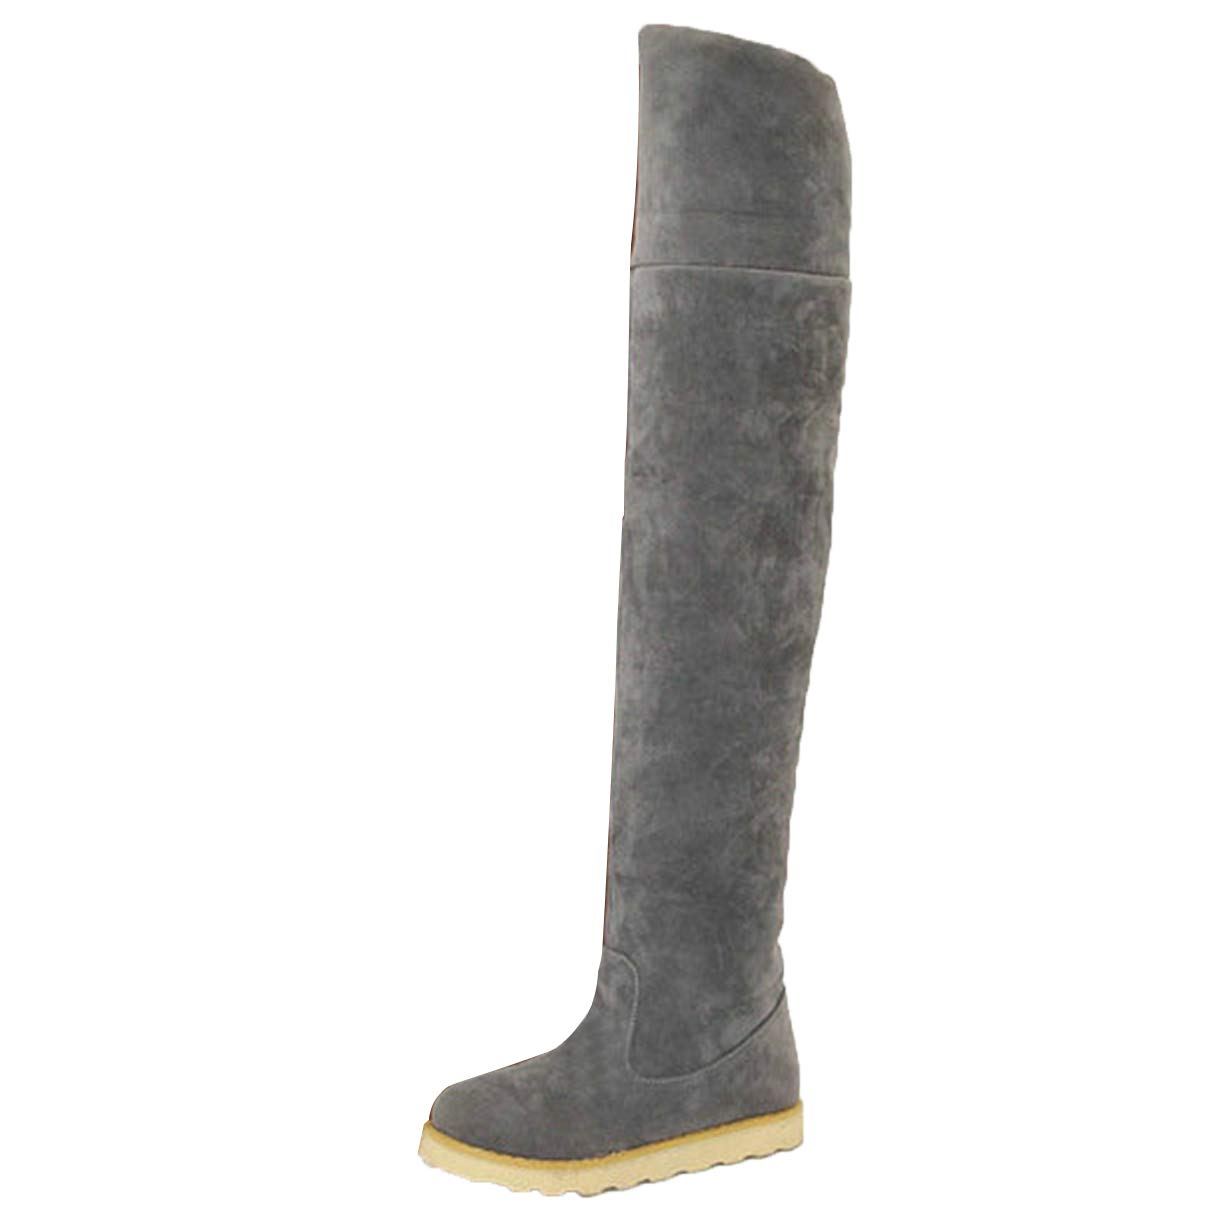 JYshoes 19916 B078N2GNZH , Gris Basses Femme Gris ffe0b05 - latesttechnology.space